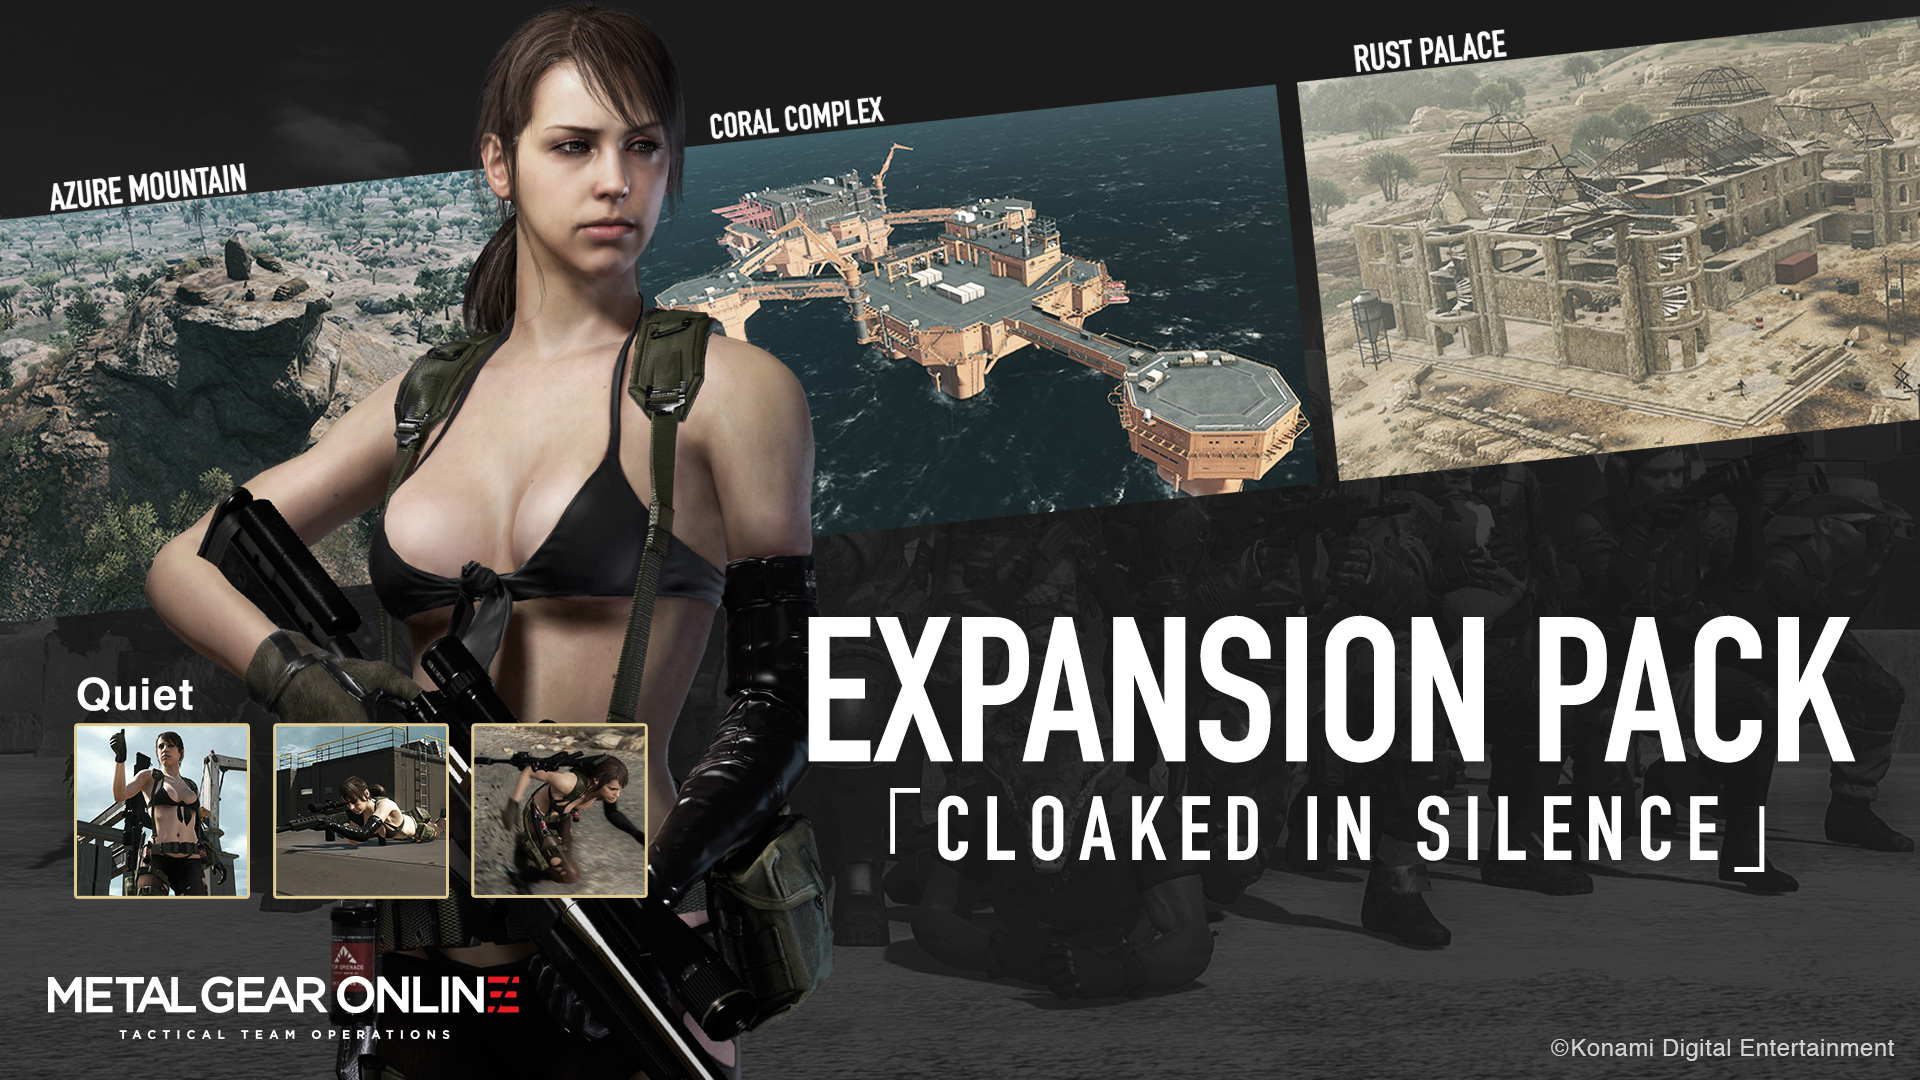 Metal-Gear-Online-Cloaked-in-Silence